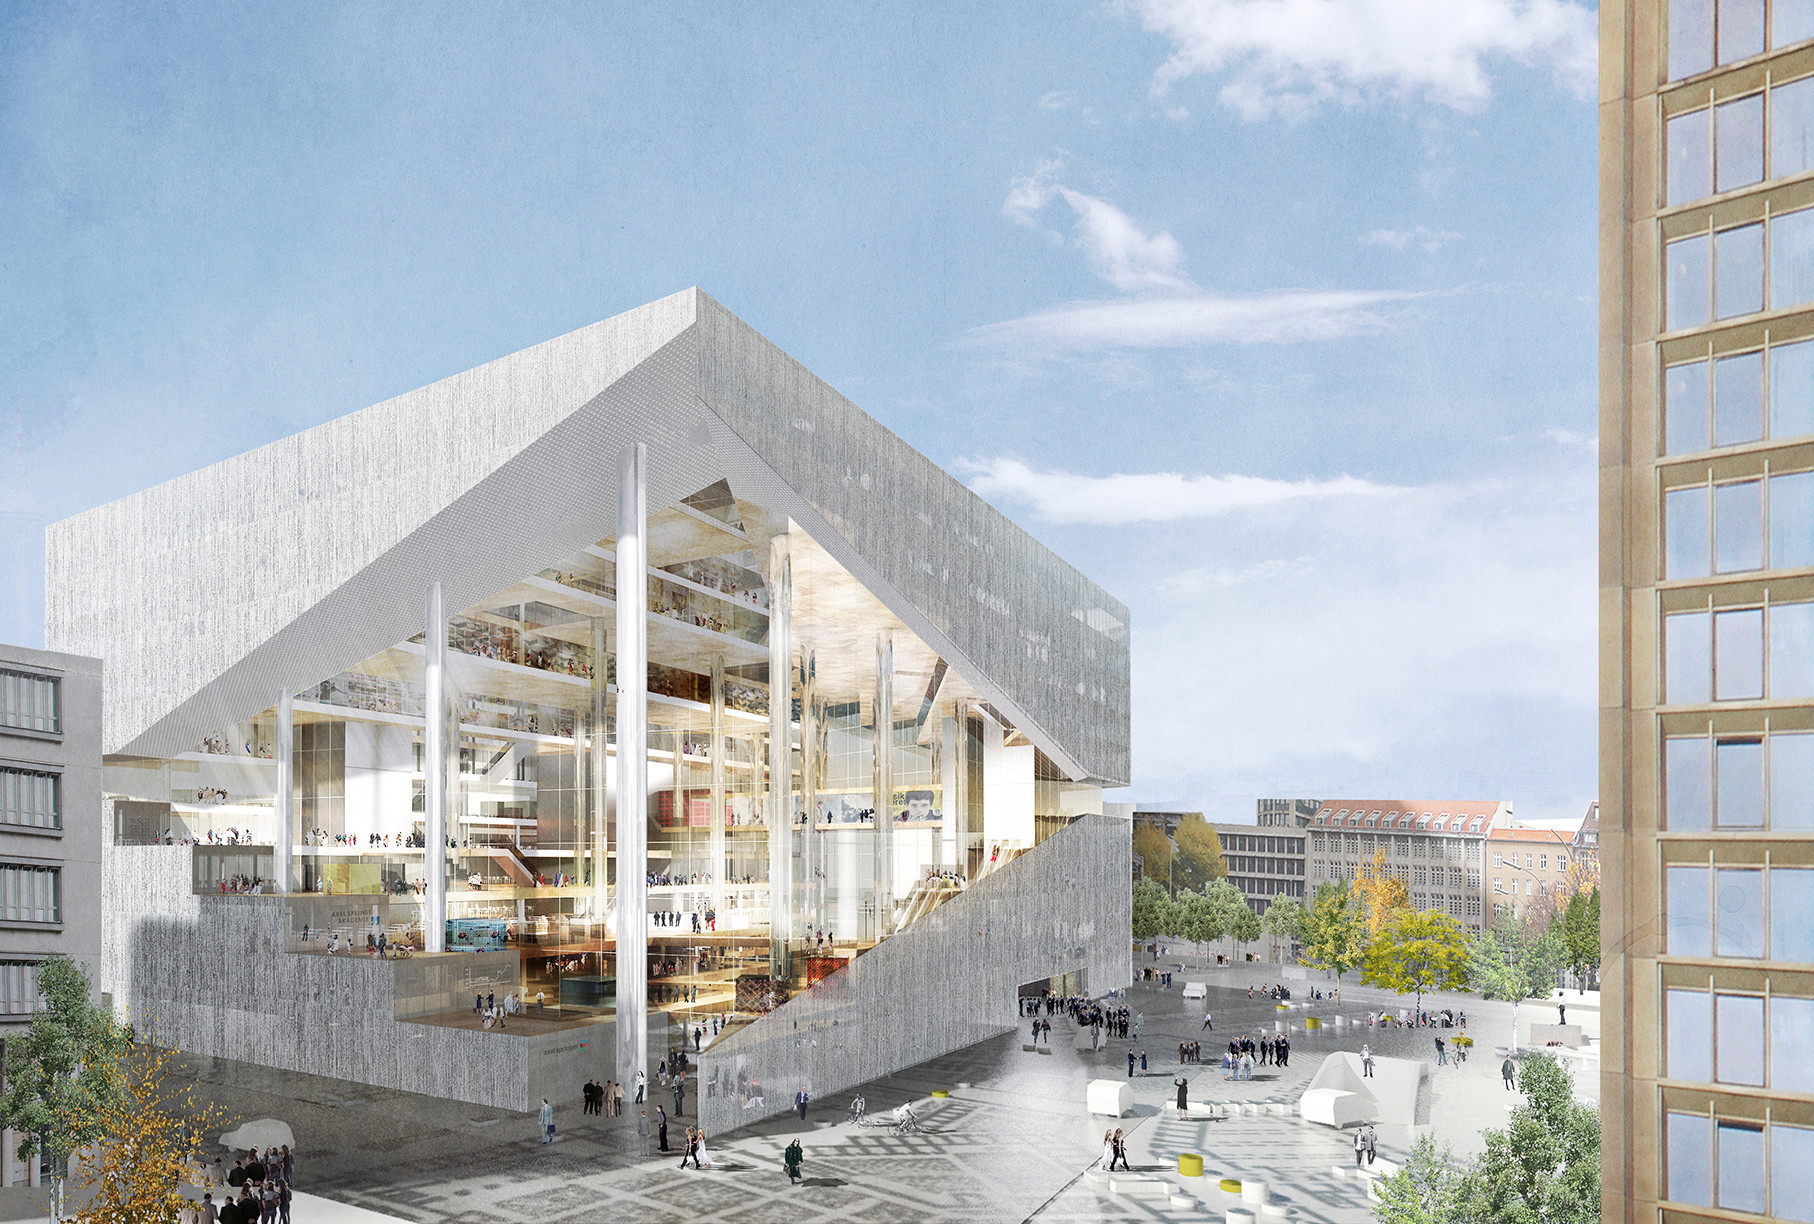 OMA Tops BIG, Büro Ole Scheeren to Design Axel Springer Campus in Berlin, OMA's winning proposal for the Axel Springer Campus in Berlin. Image Courtesy of Axel Springer SE